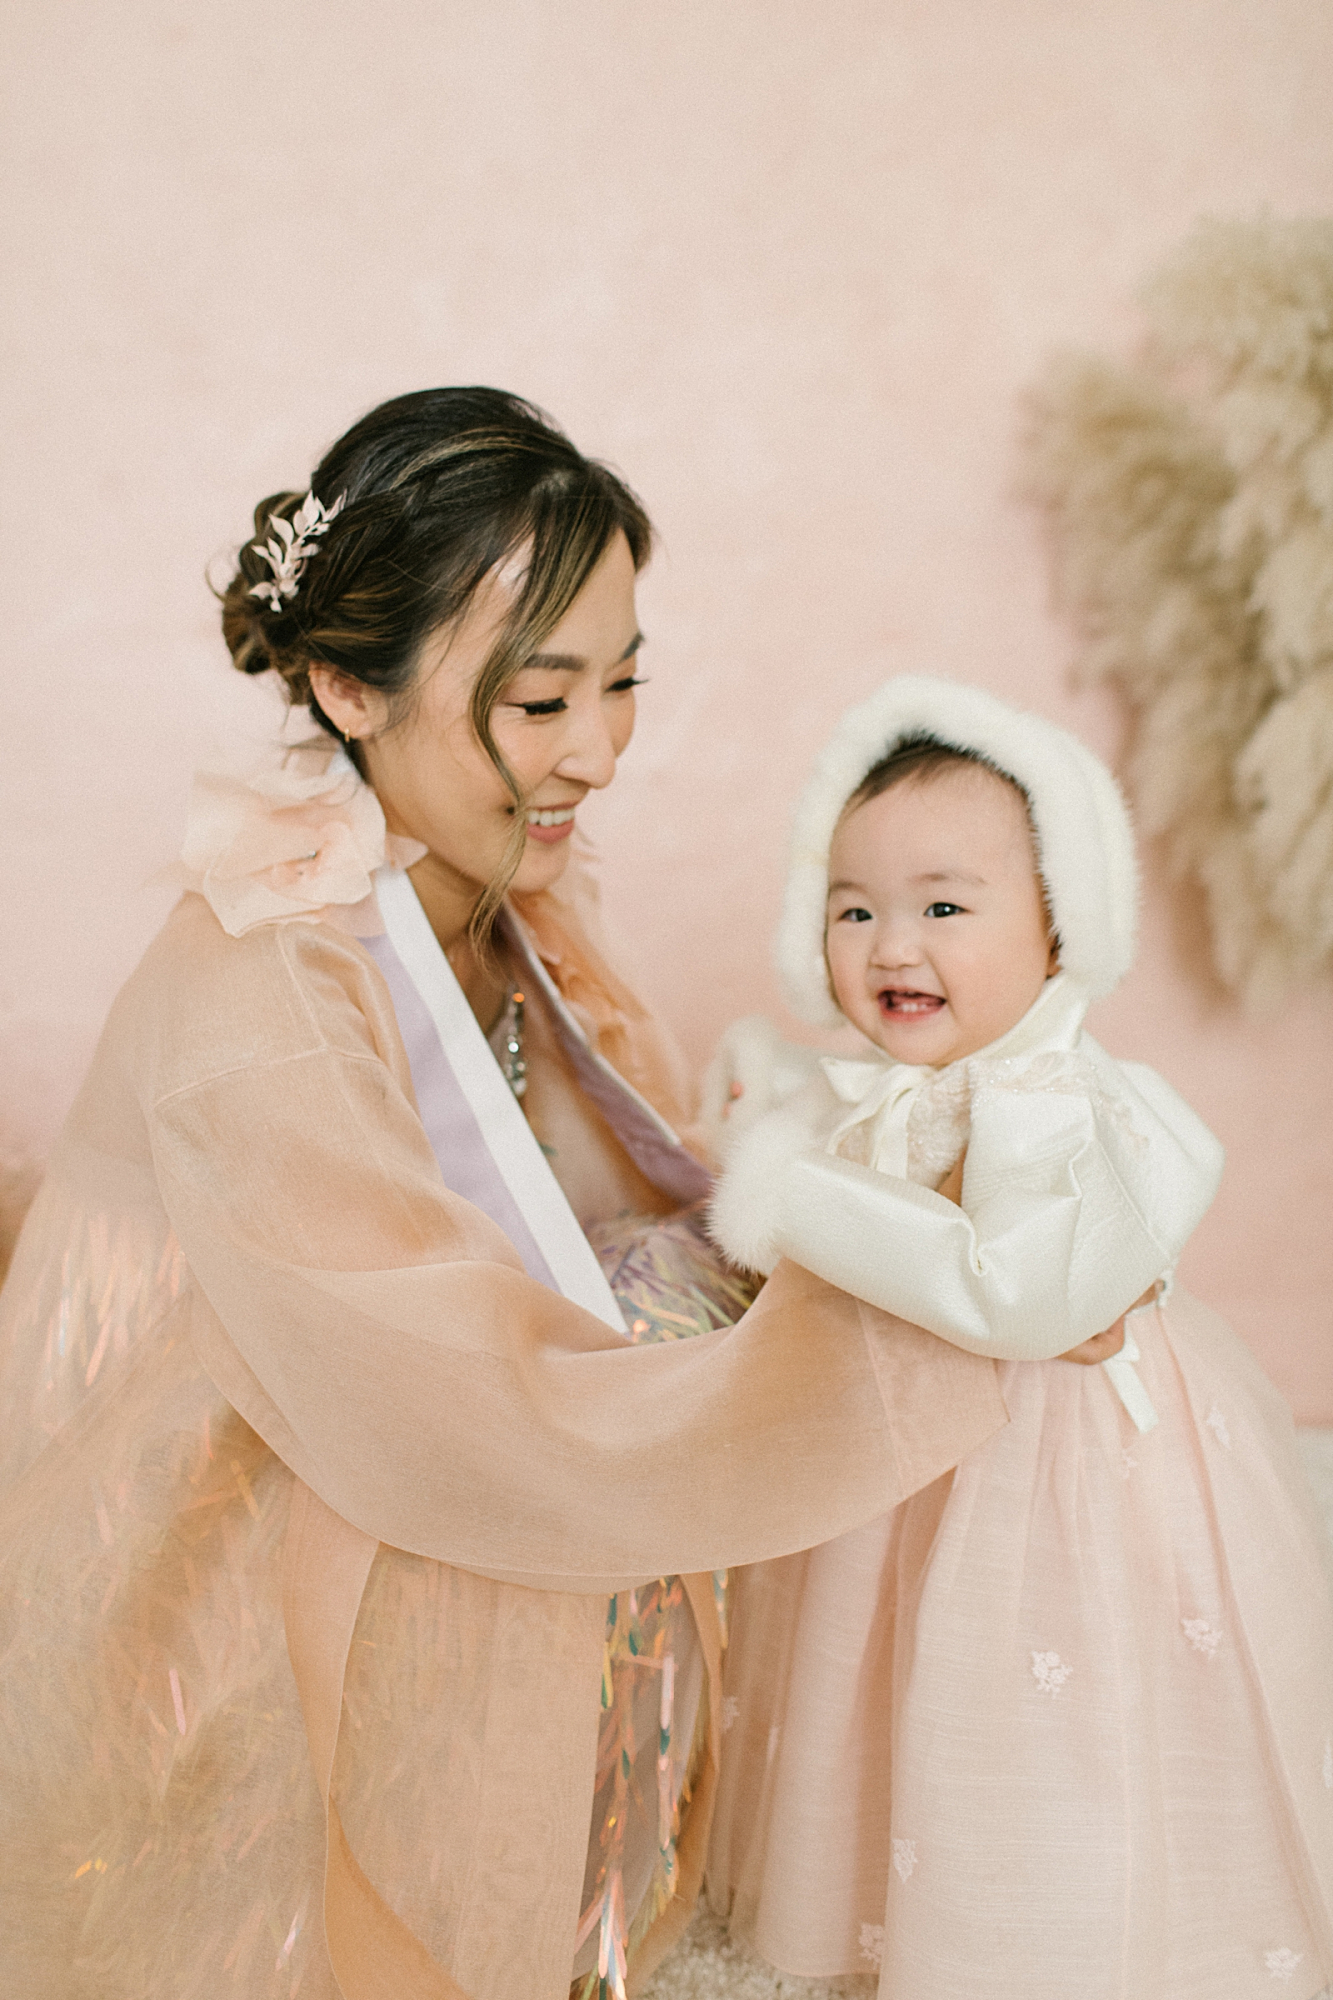 Modern Korean Hanbok Outfits for Mom and Baby